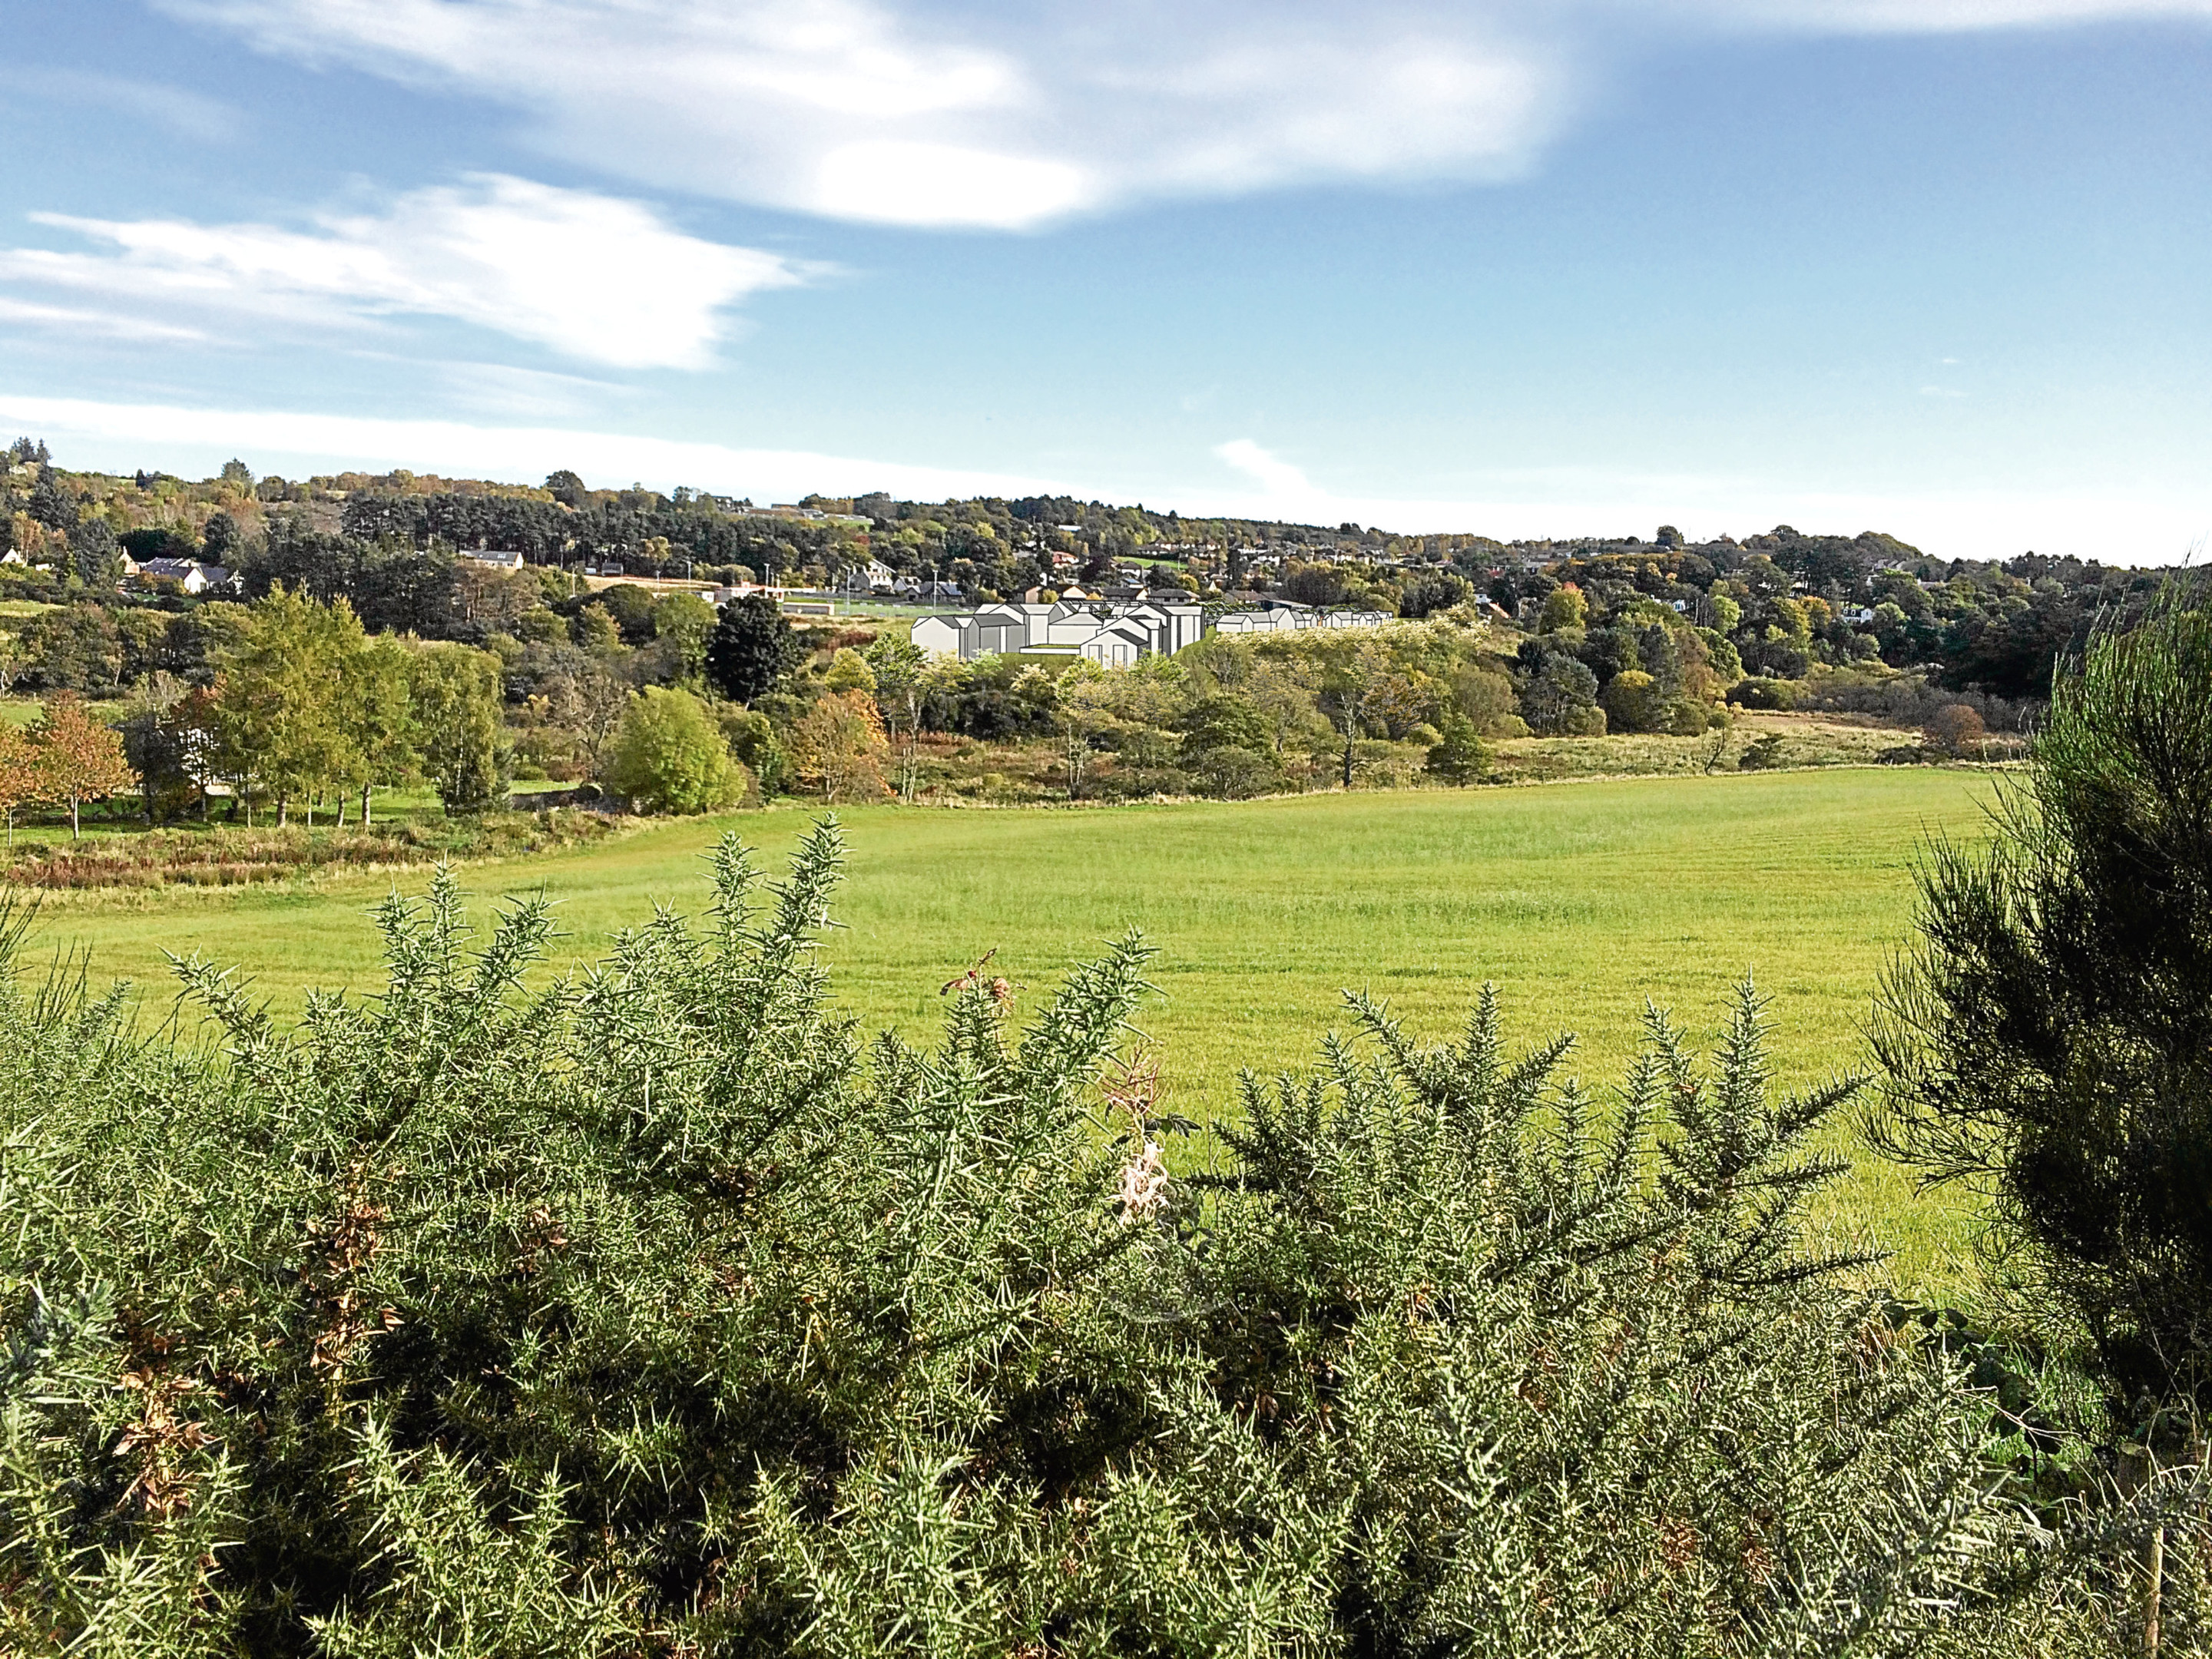 An artist's impression of the proposed development site at Peterculter, taken from North Deeside Road.